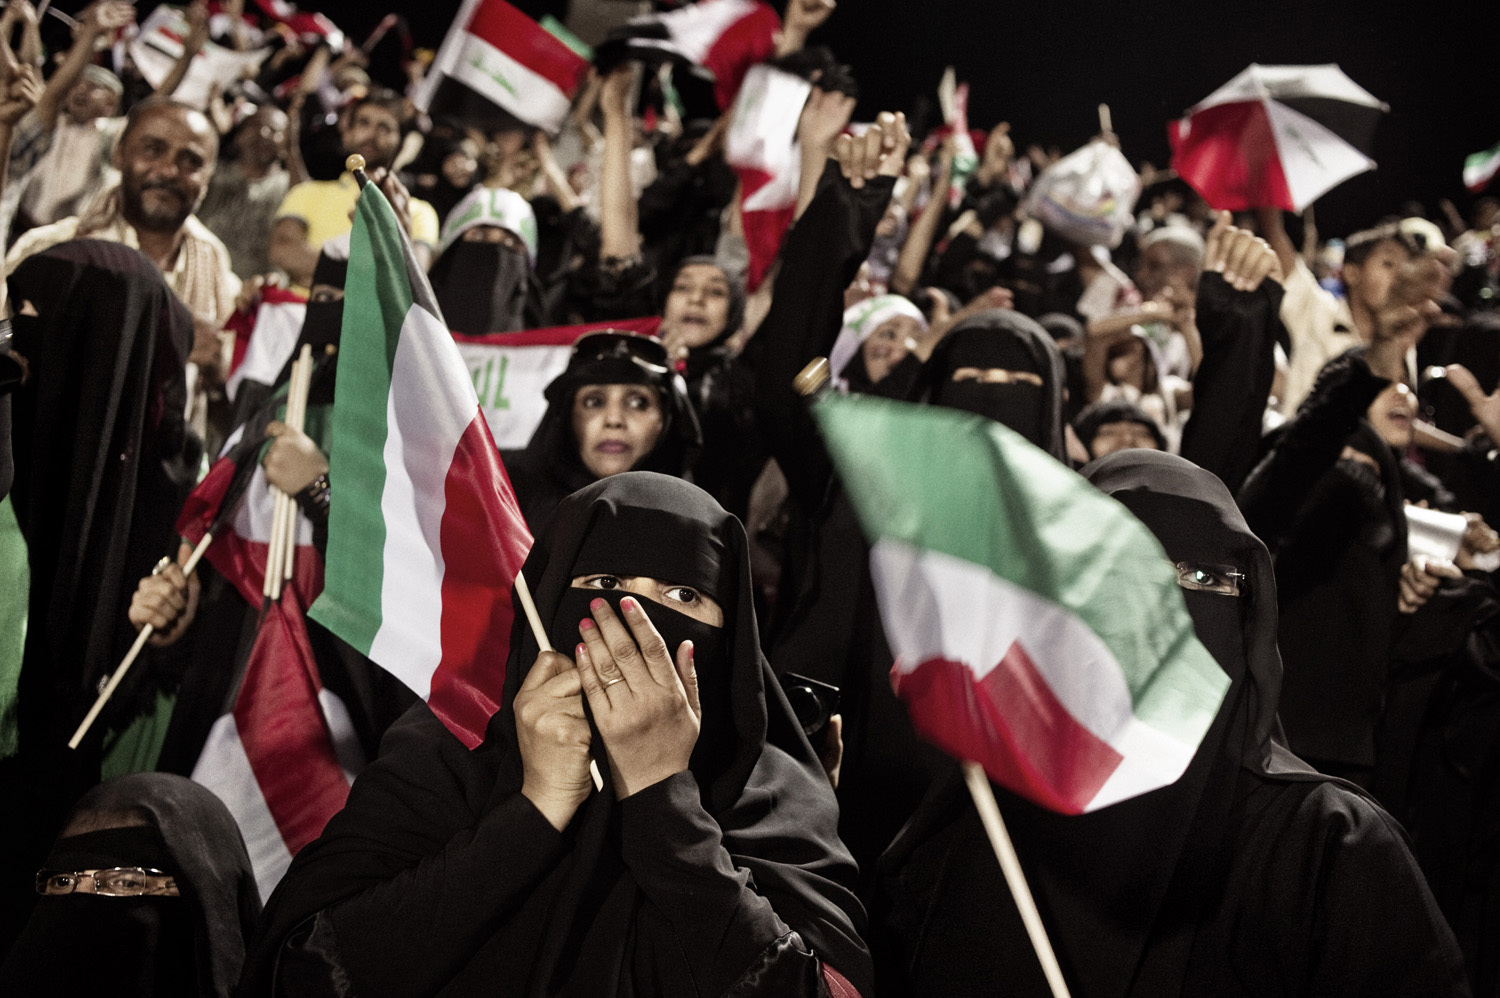 Fans attend a Gulf Cup soccer match between Iraq and Kuwait in Sanaa.